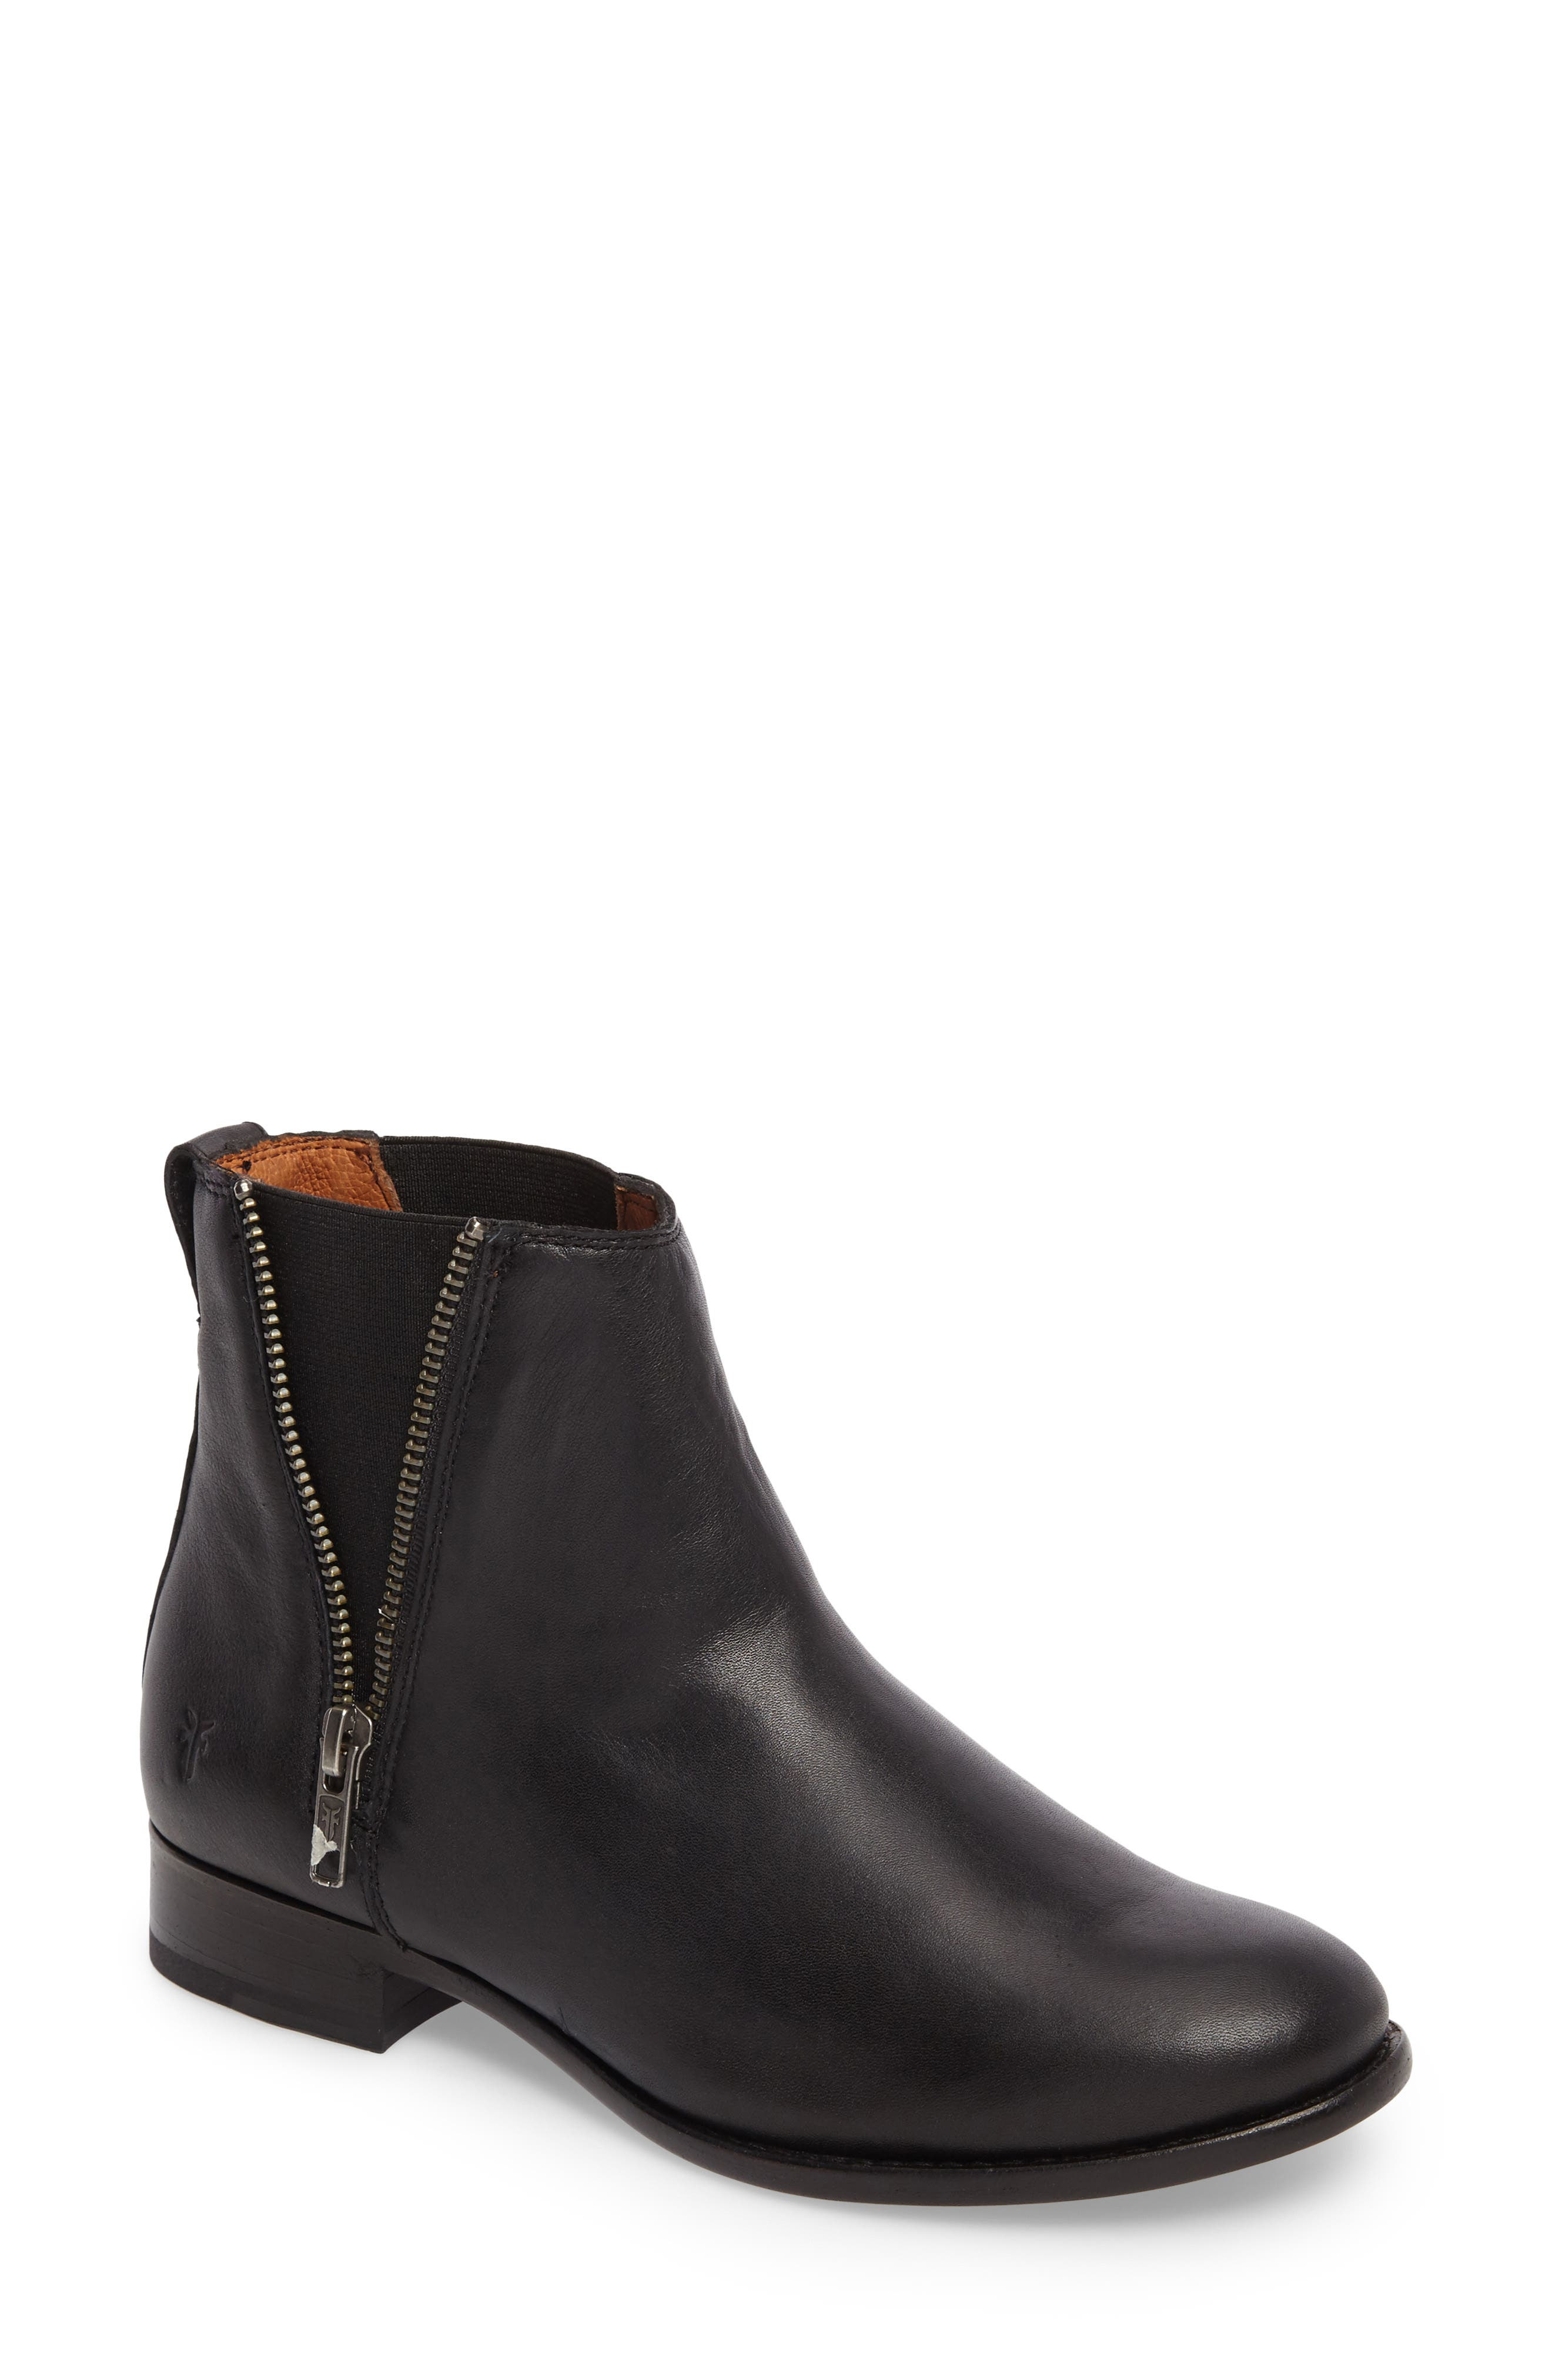 Carly Chelsea Boot,                         Main,                         color, Black Leather